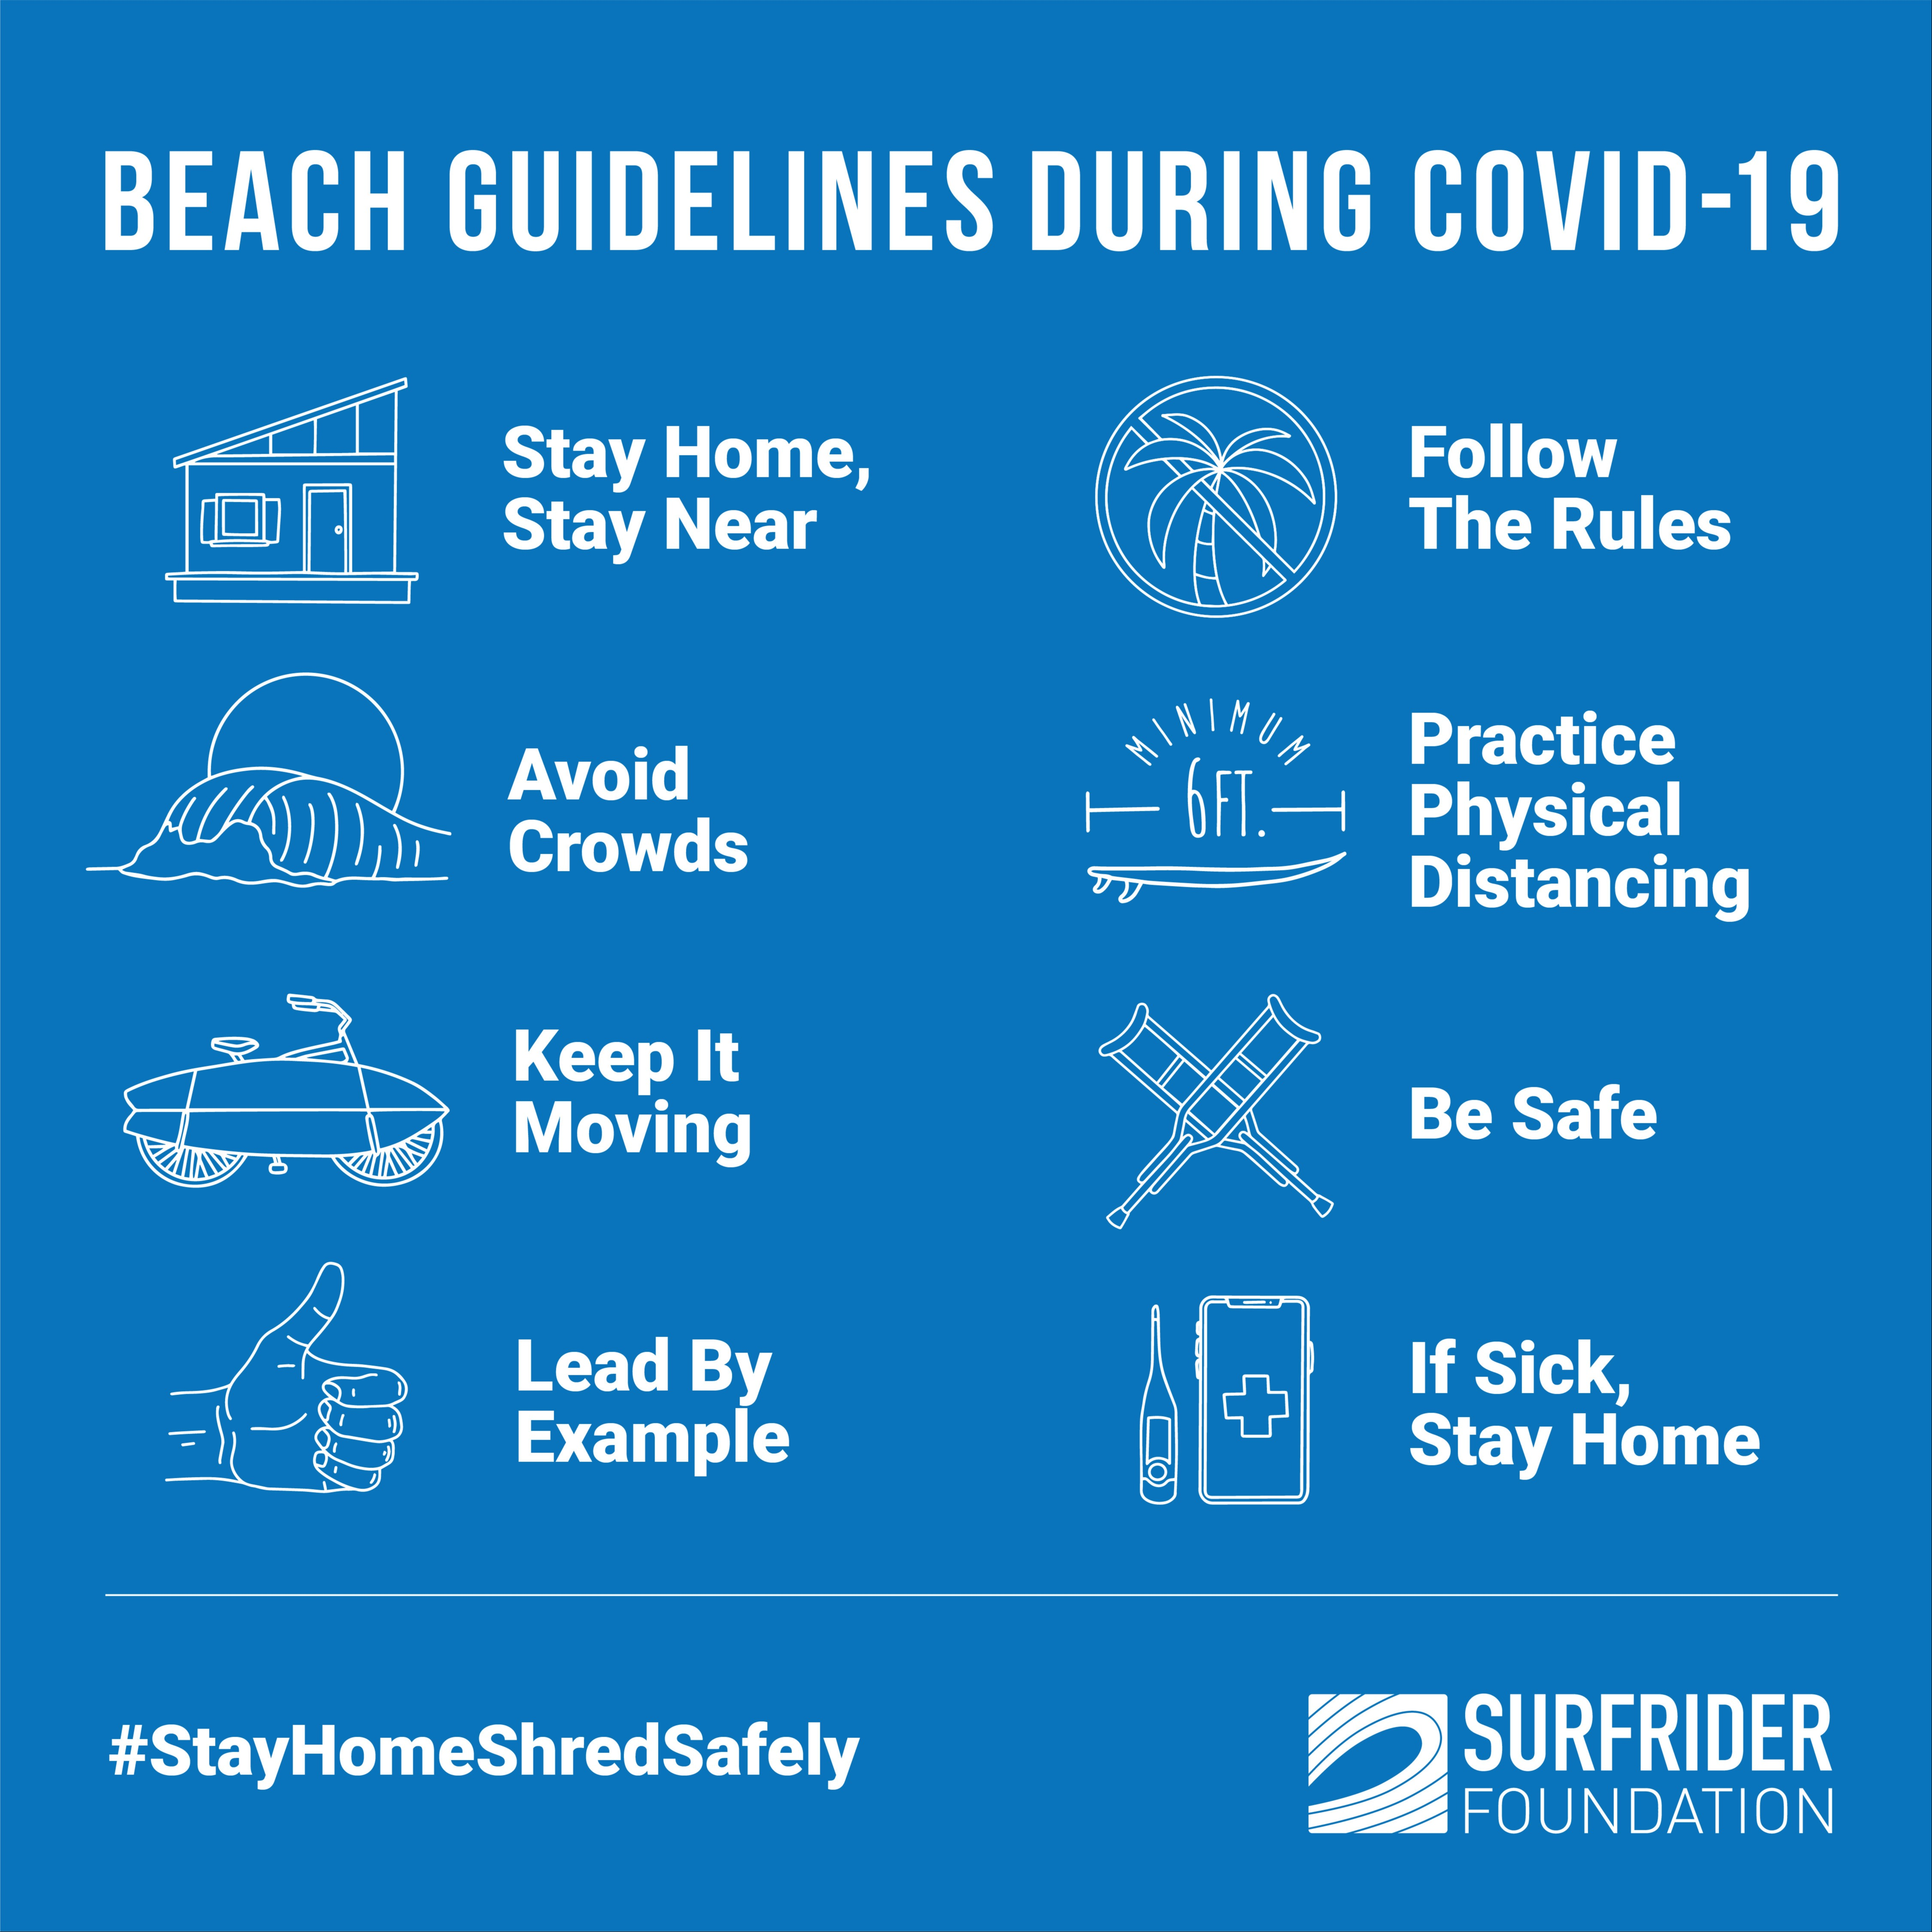 [Updated] Beach Guidelines During COVID-19